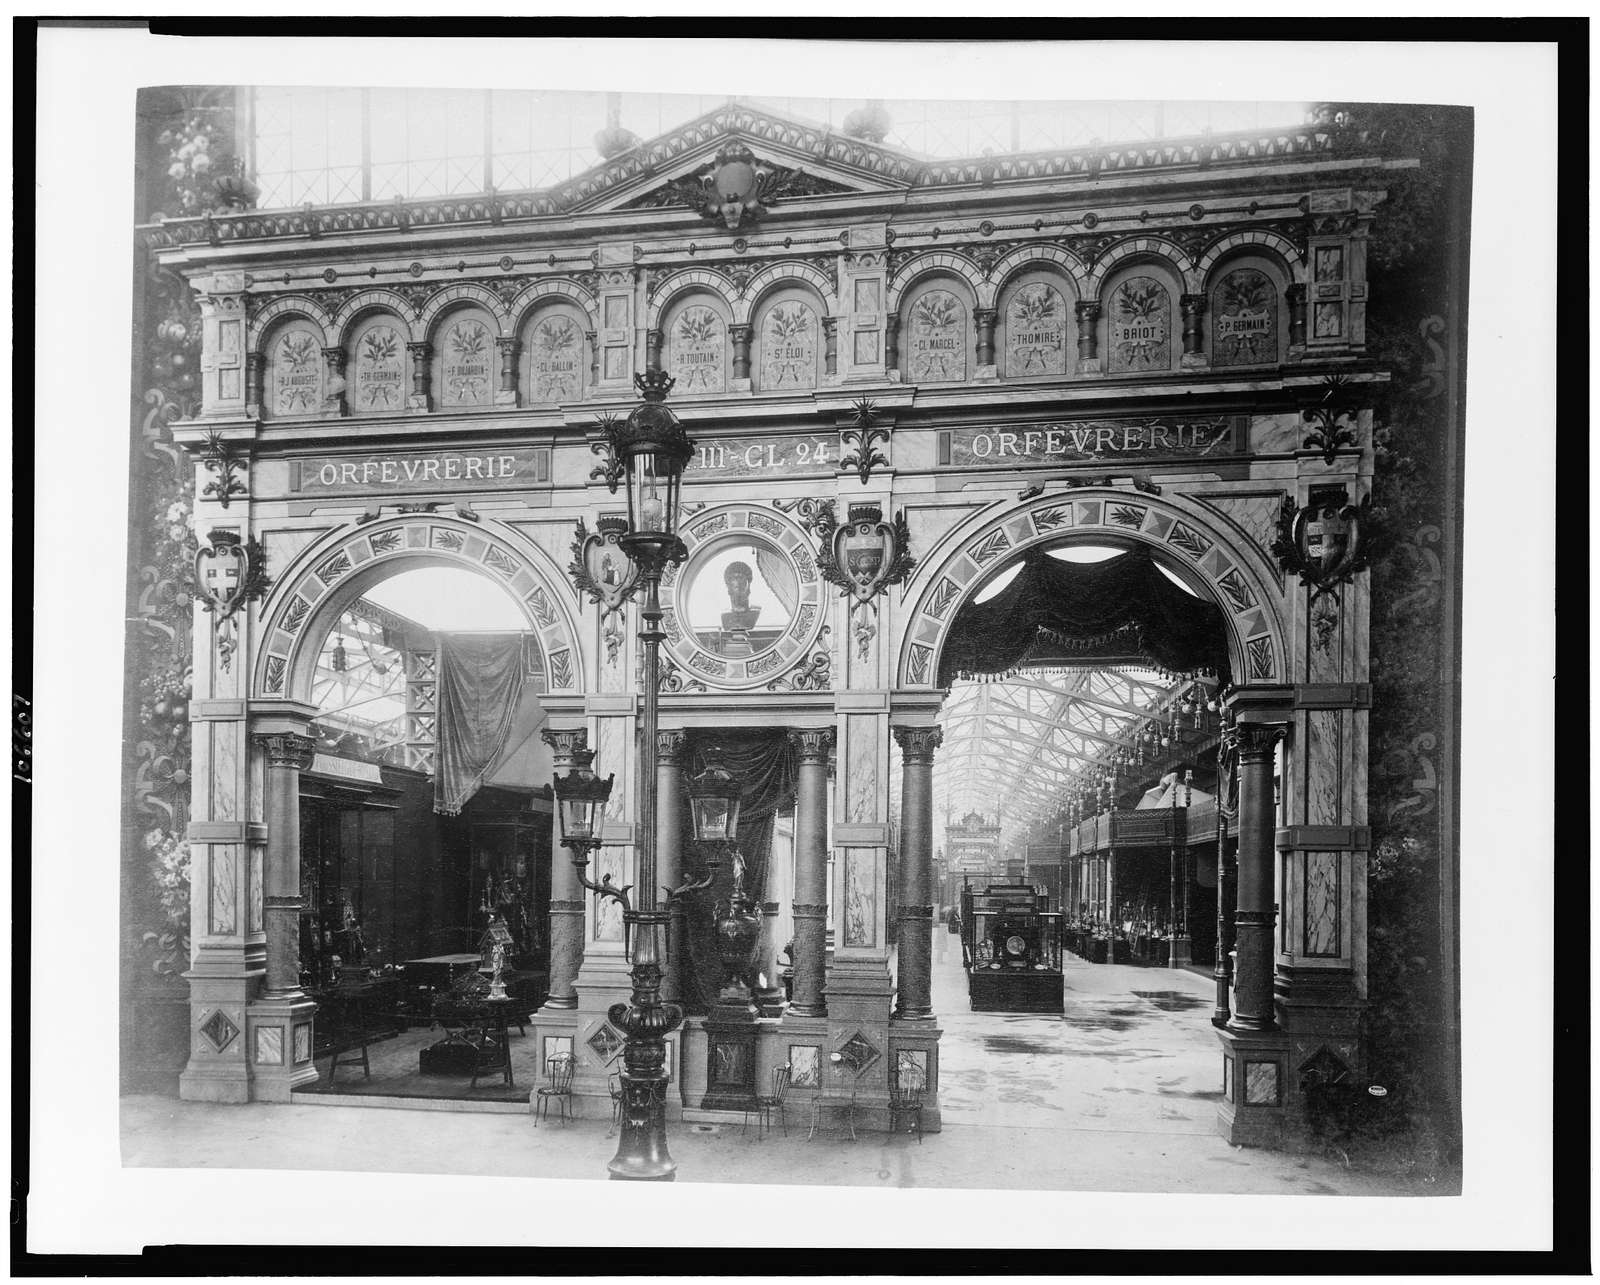 [Entrance to the jewellers' exhibit, Palace of Diverse Industries, Paris Exposition, 1889]